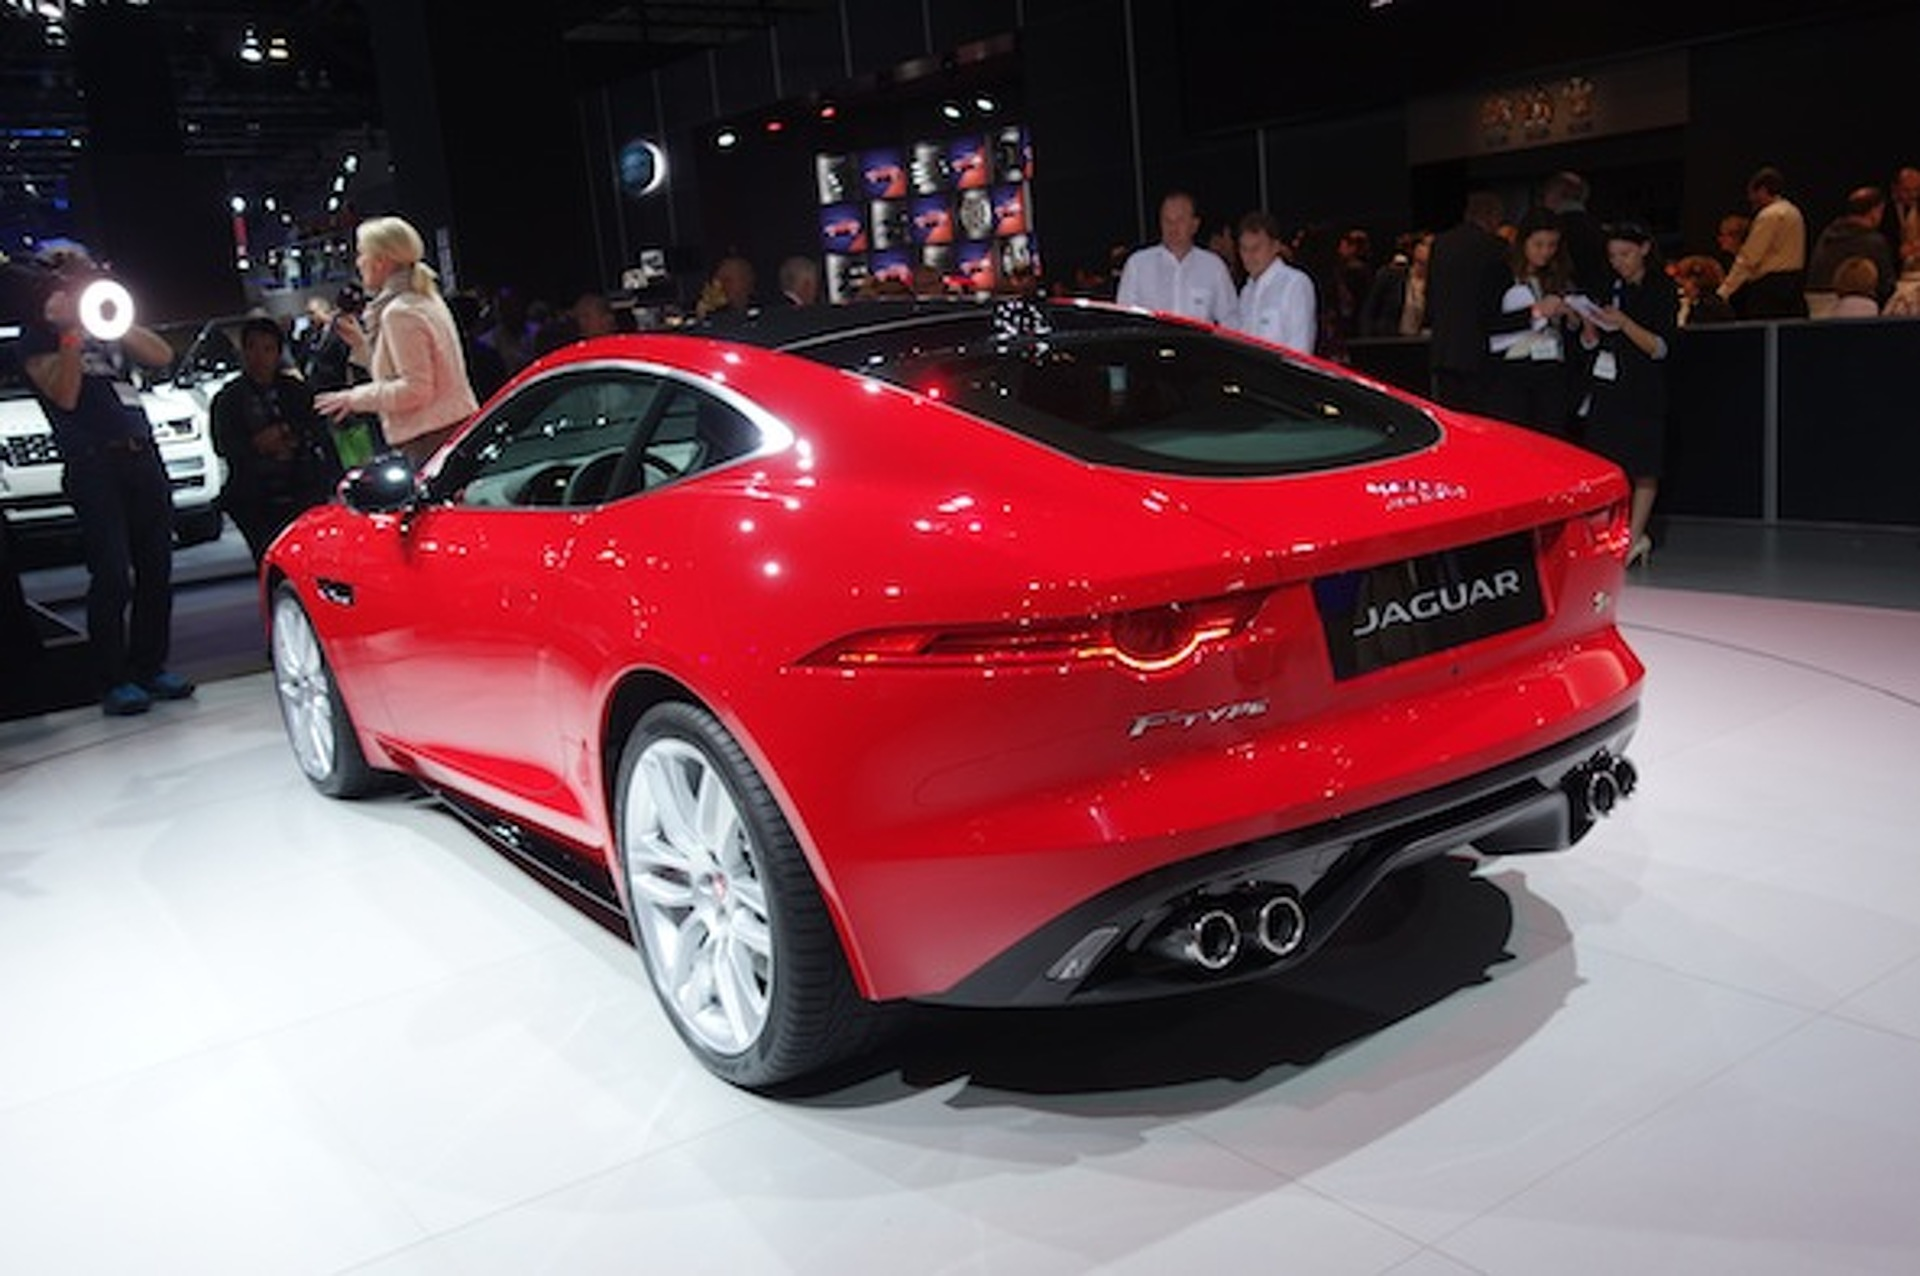 Jaguar F-Type Coupe is one Pretty Kitty